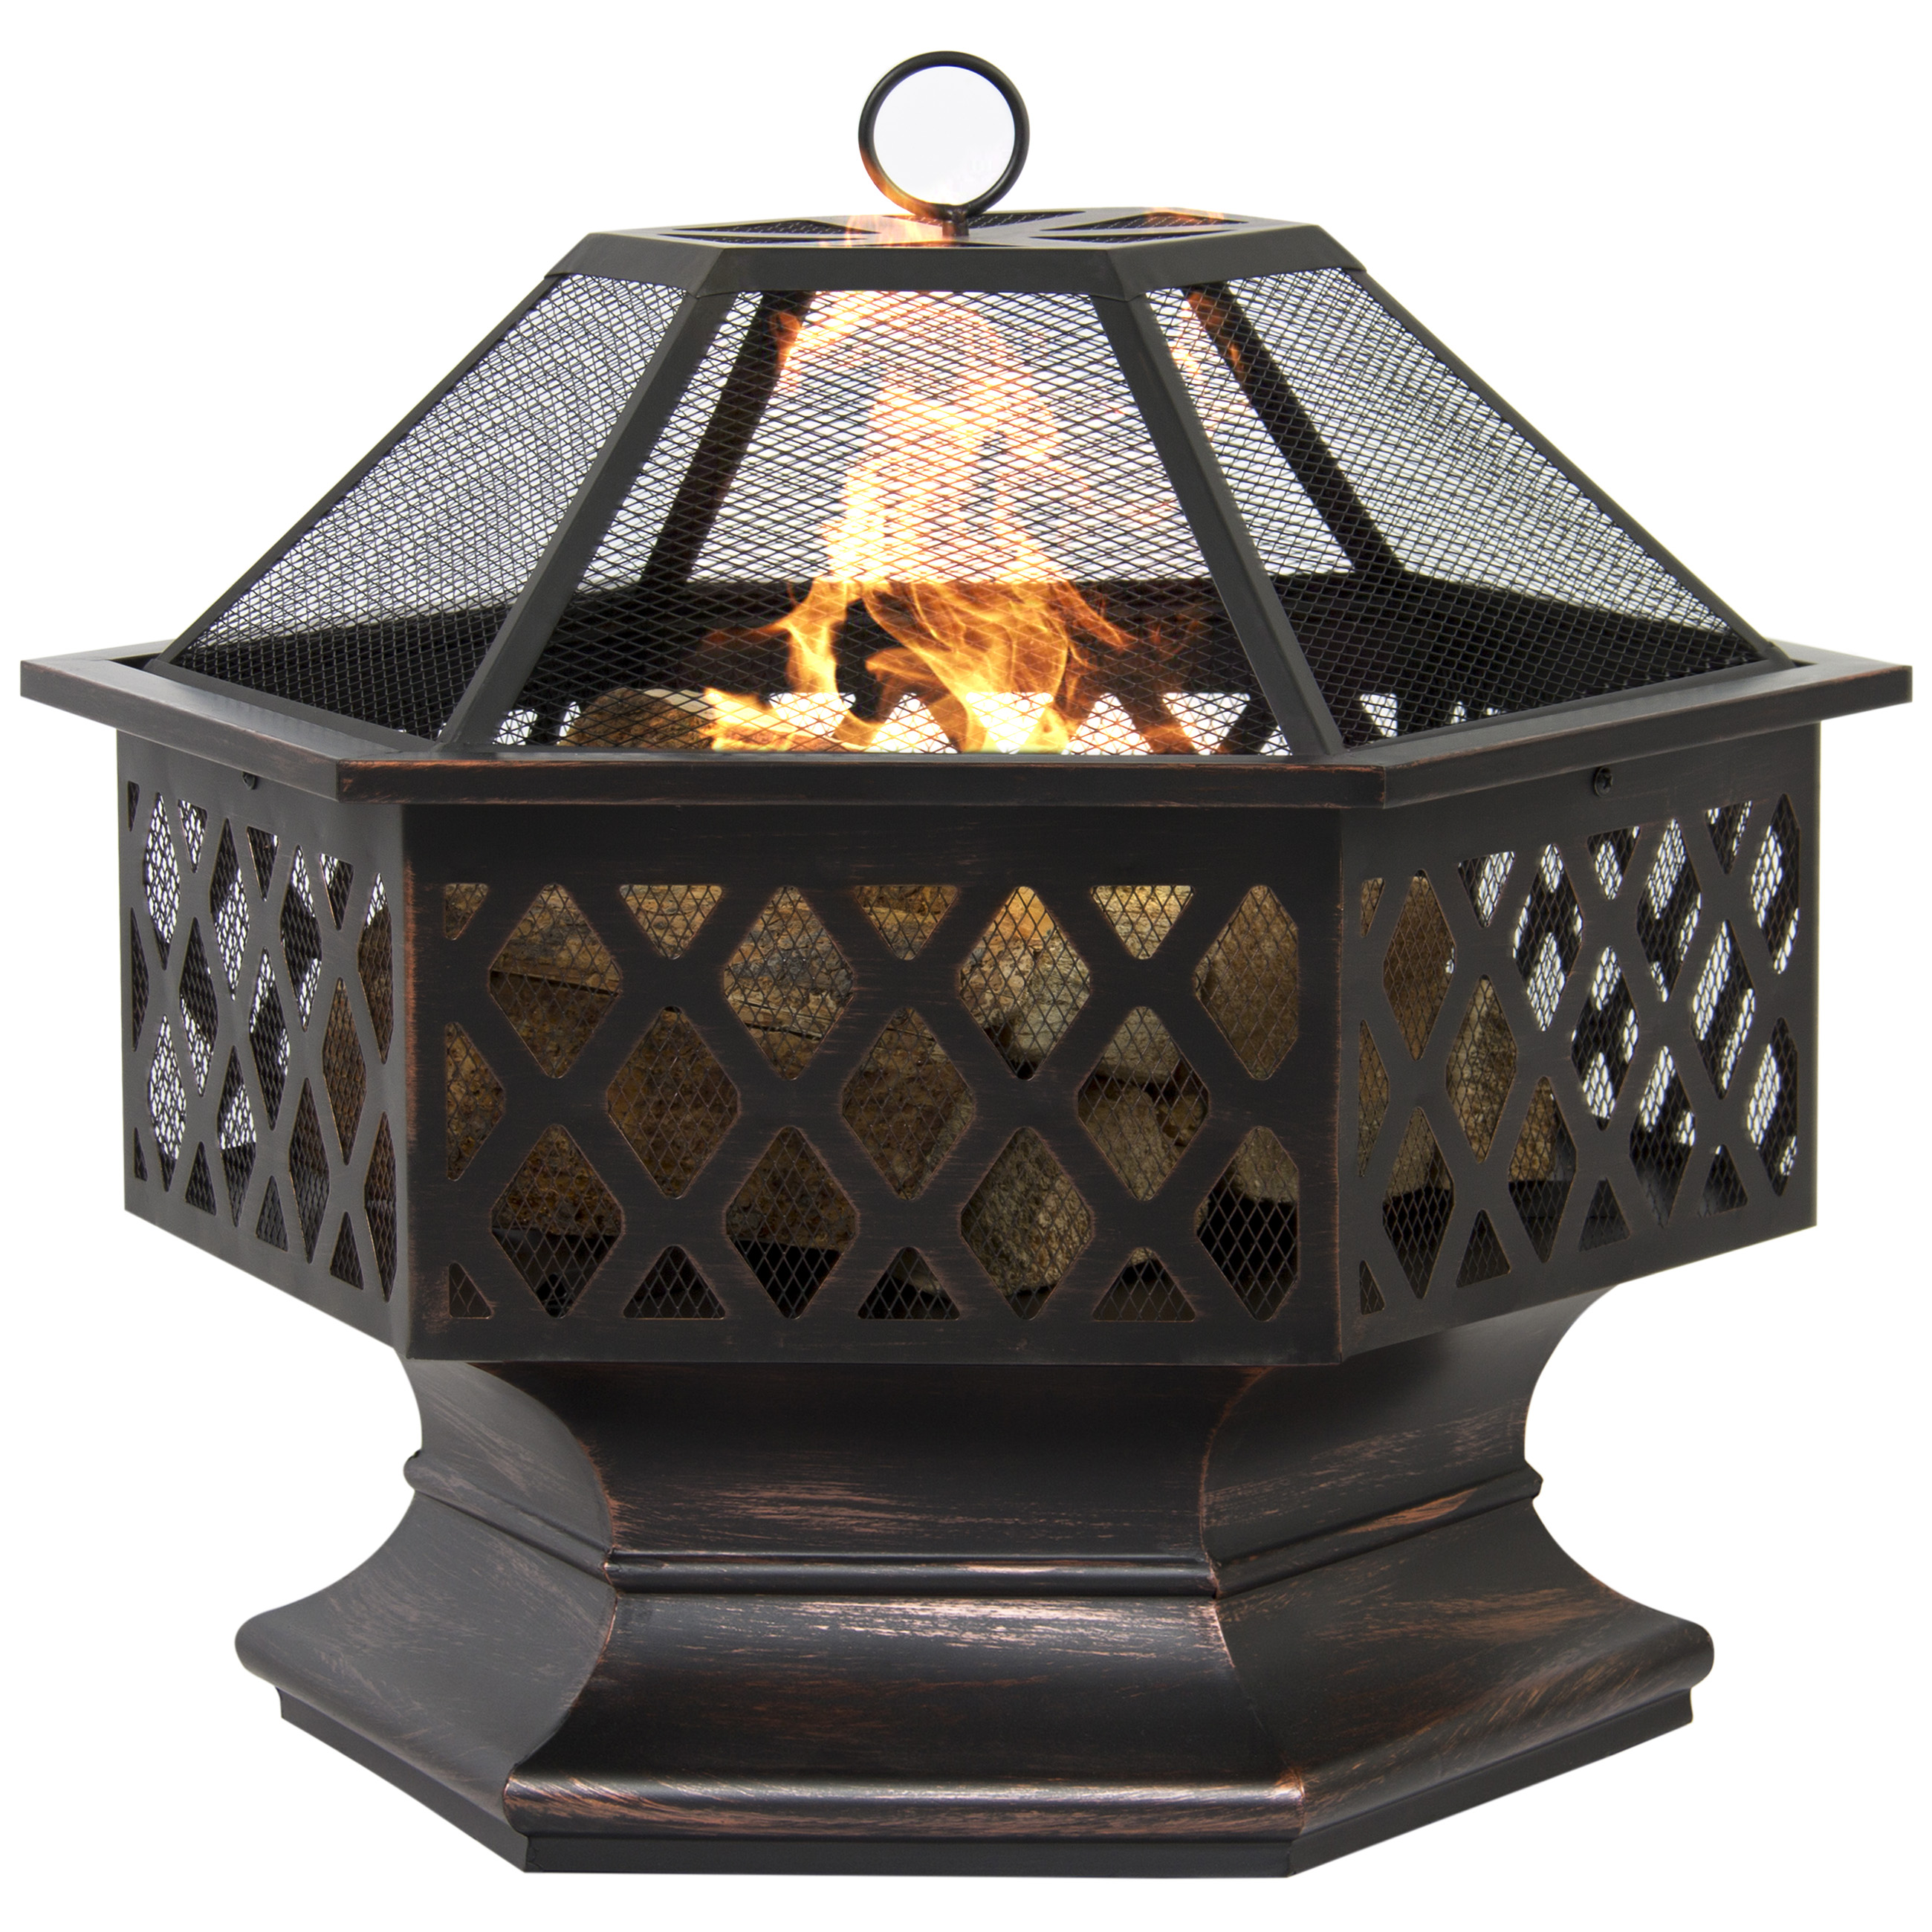 Fire Pits and Outdoor Fireplaces Walmart